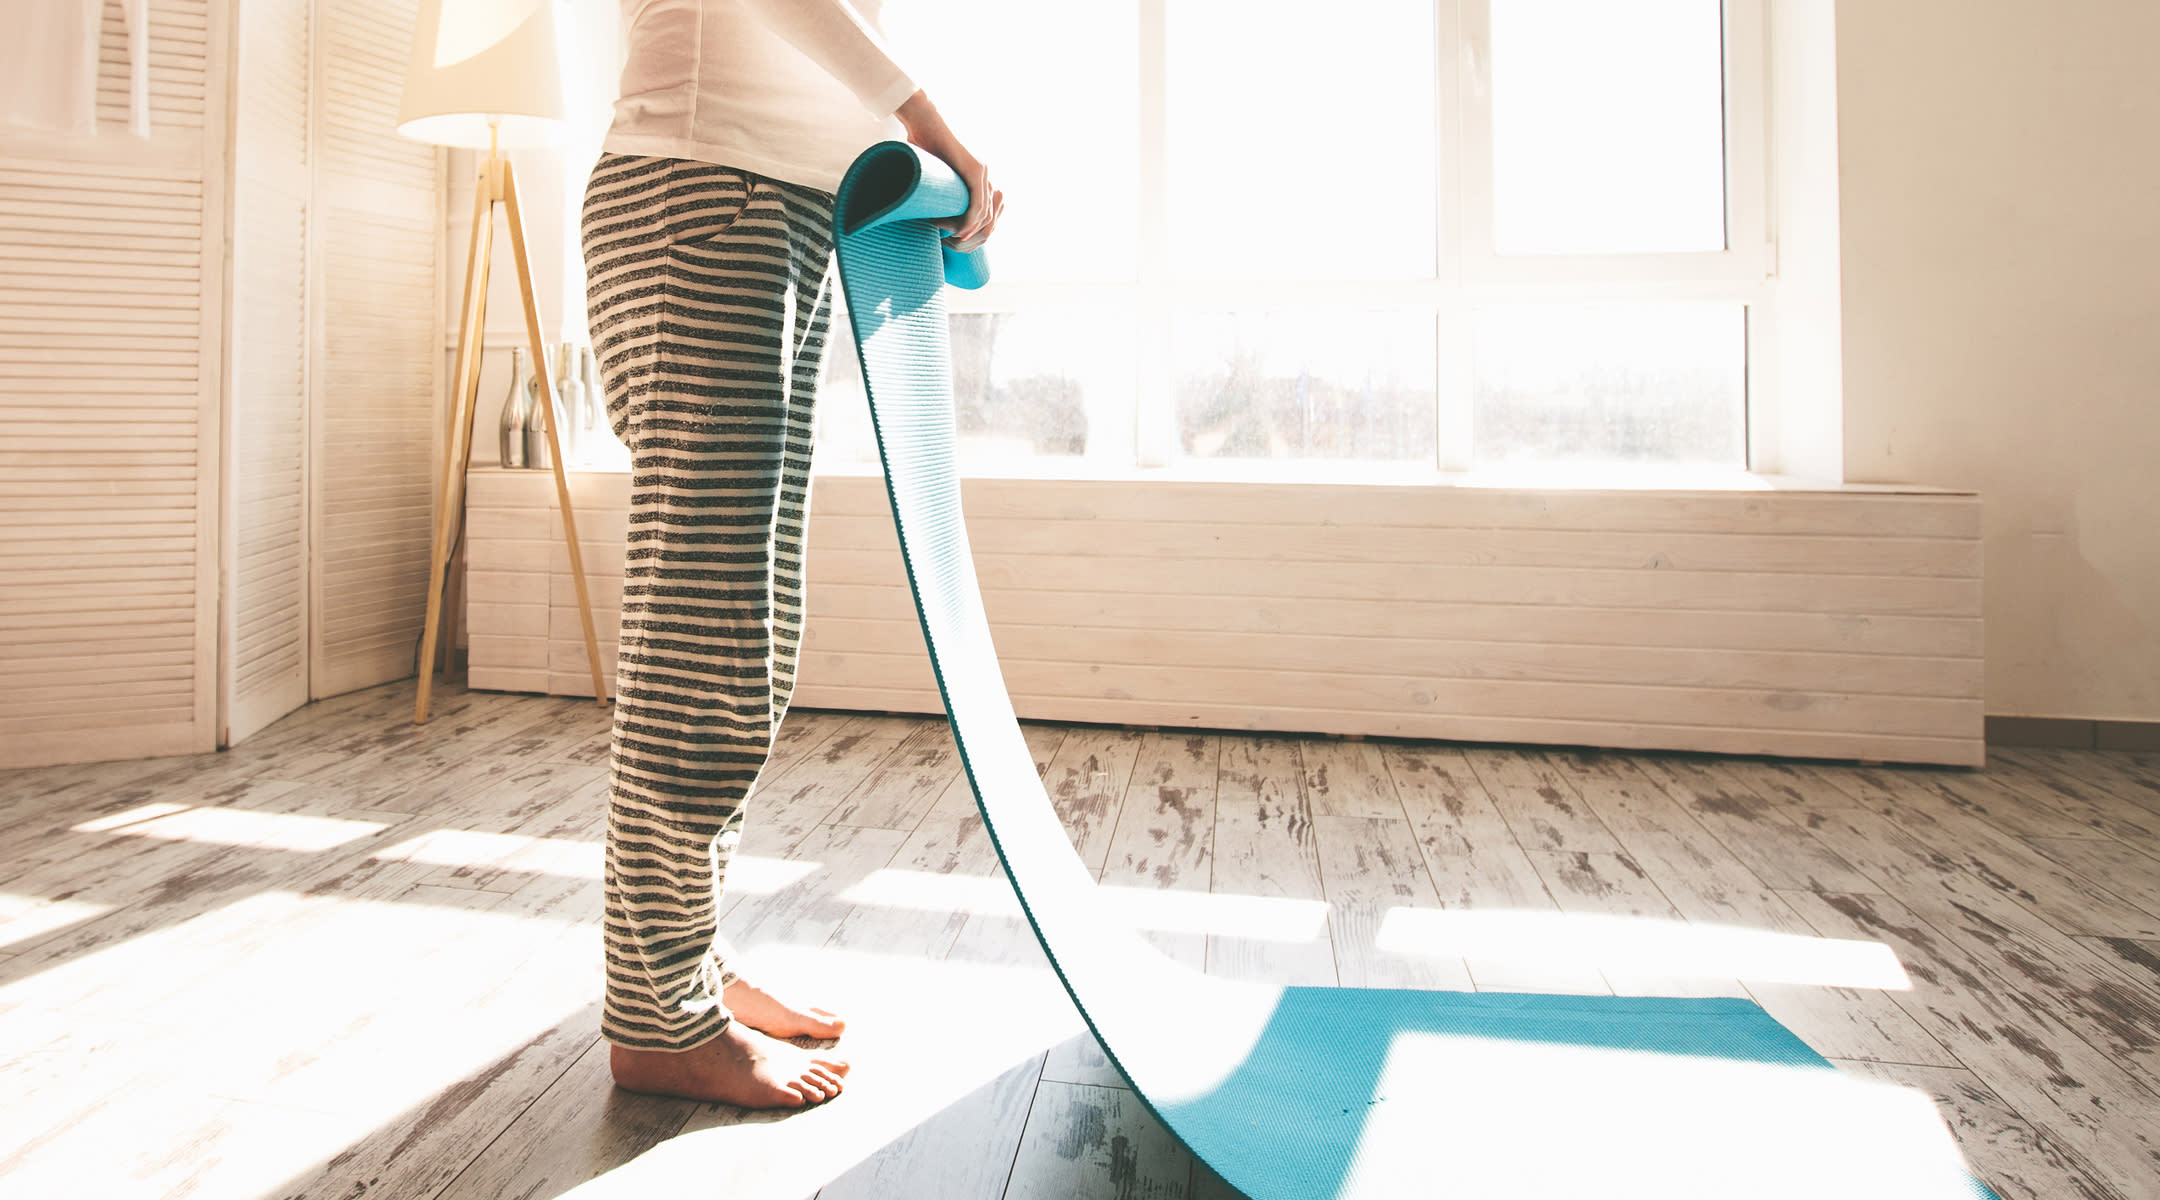 pregnant woman rolling up yoga mat after exercising at home